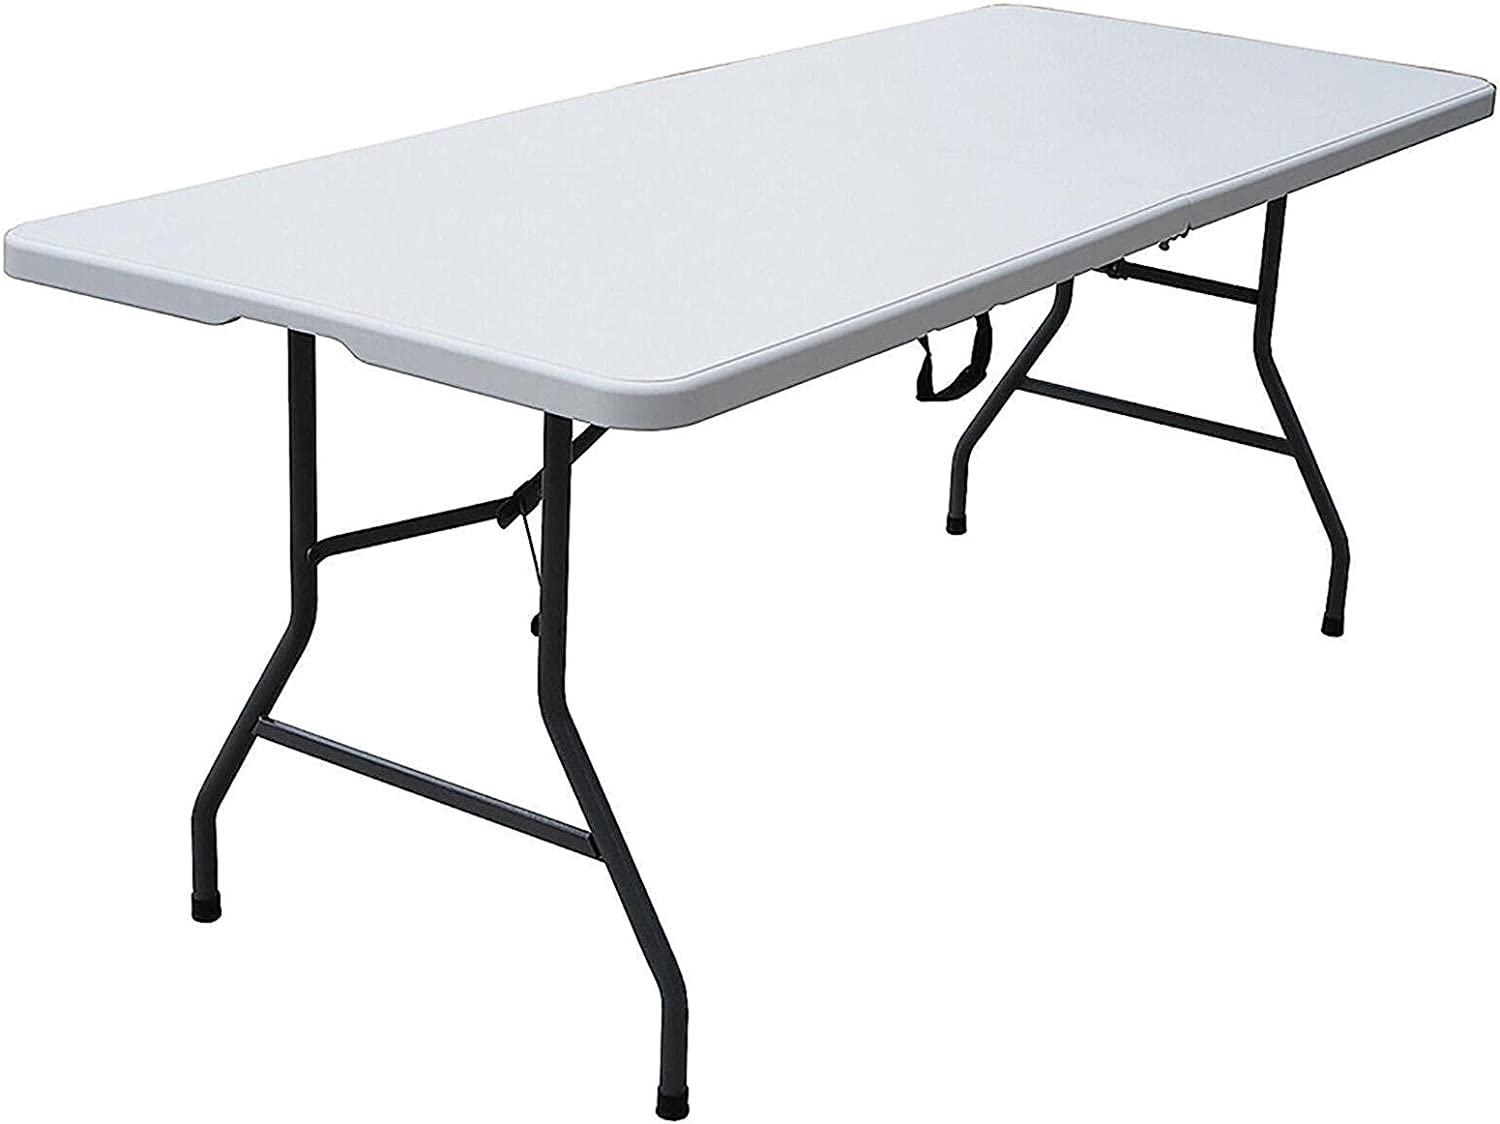 6 Foot Fold in Half Limited Special Price Desk Folding White Banquet Max 88% OFF Table